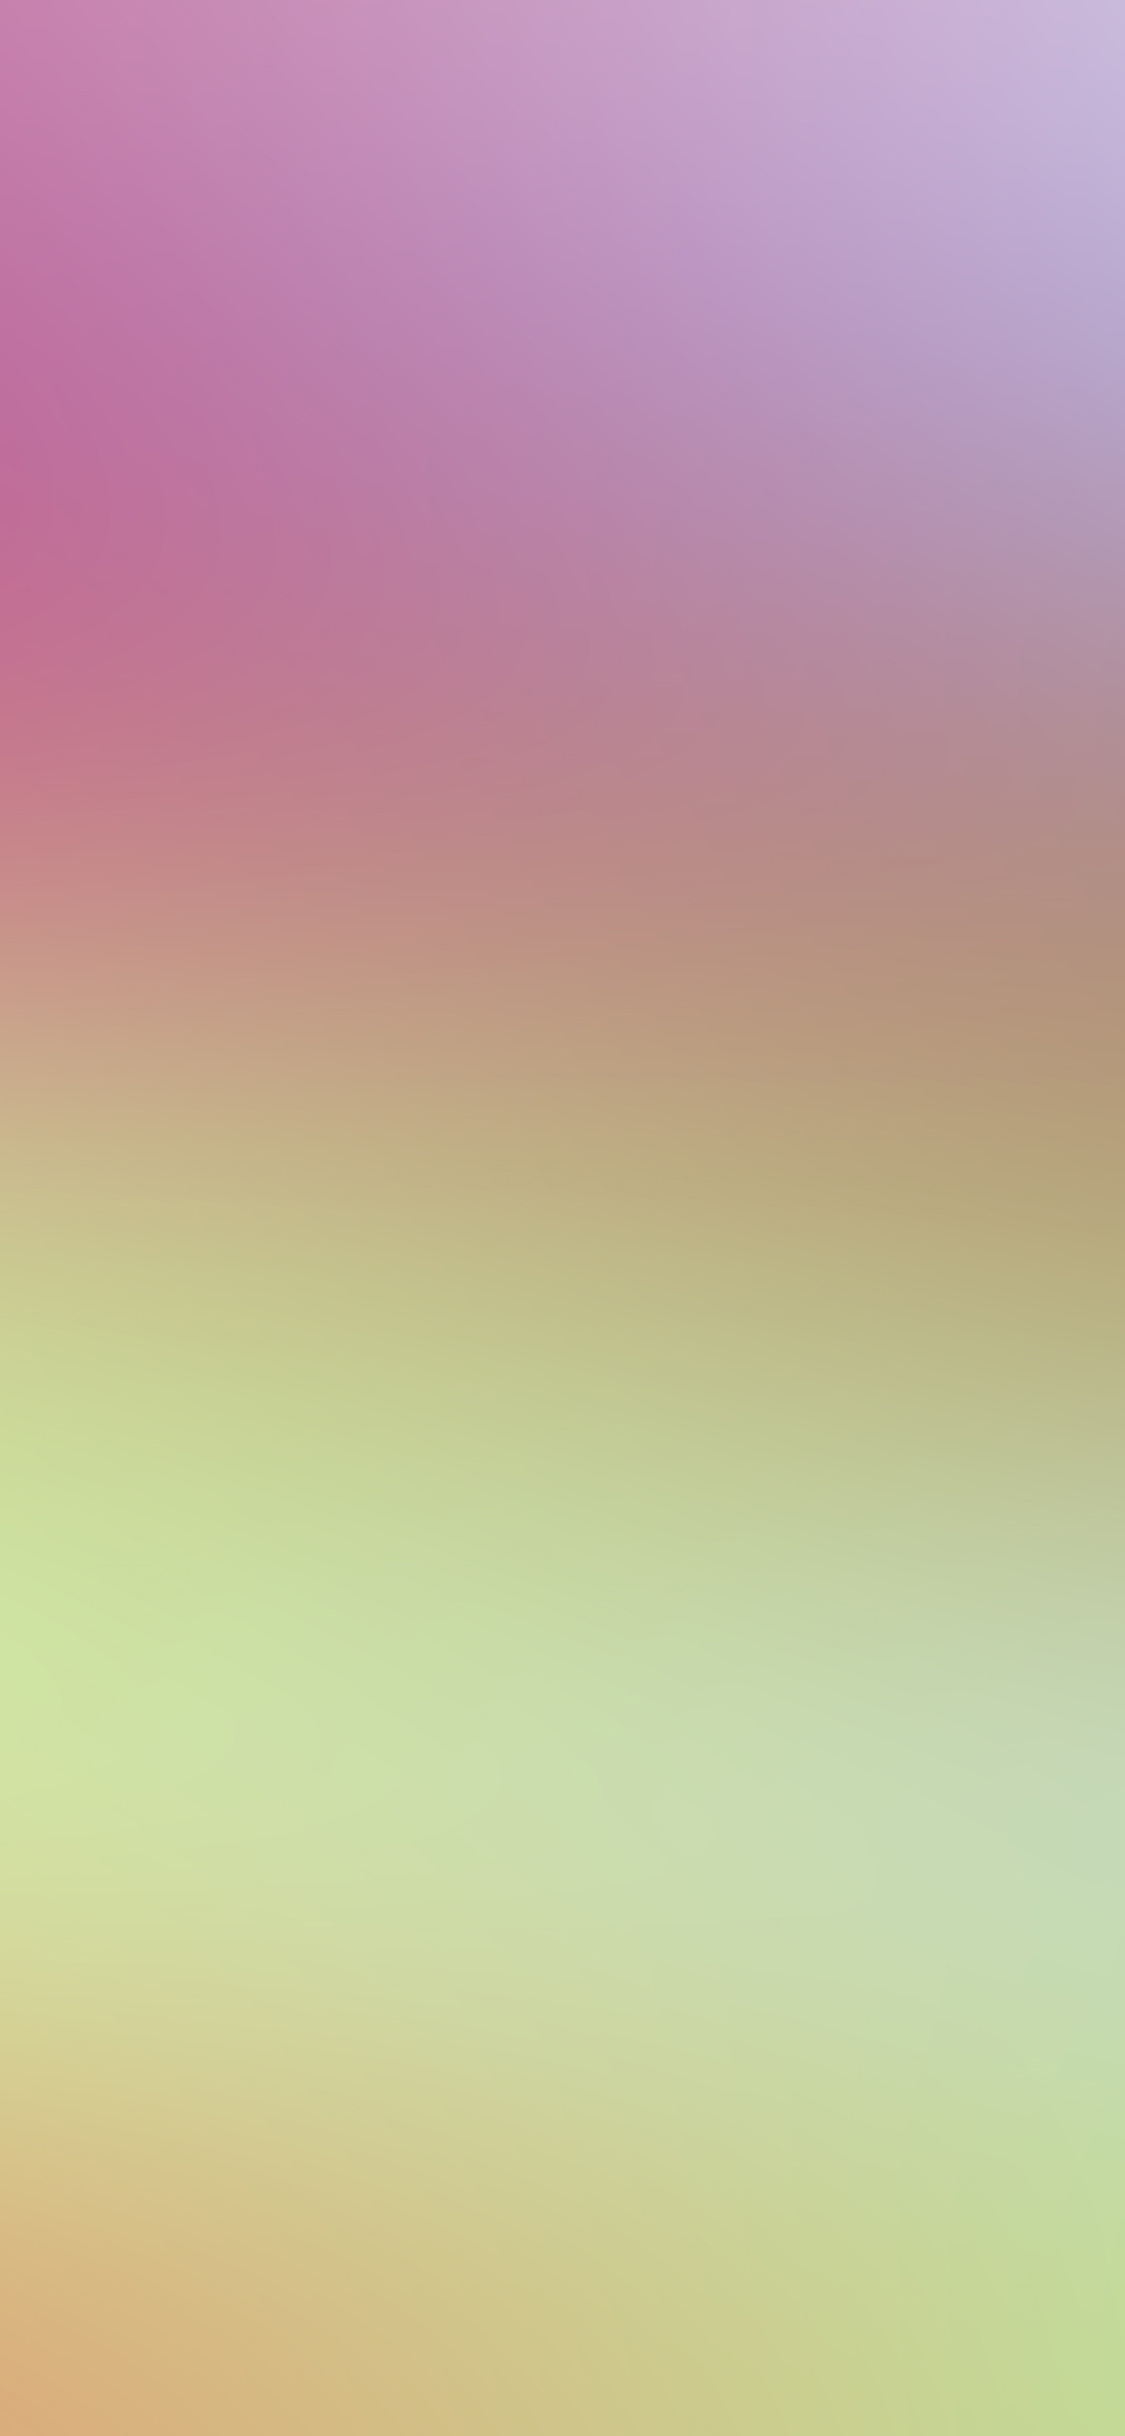 iPhoneXpapers.com-Apple-iPhone-wallpaper-sl55-pink-morning-blur-gradation